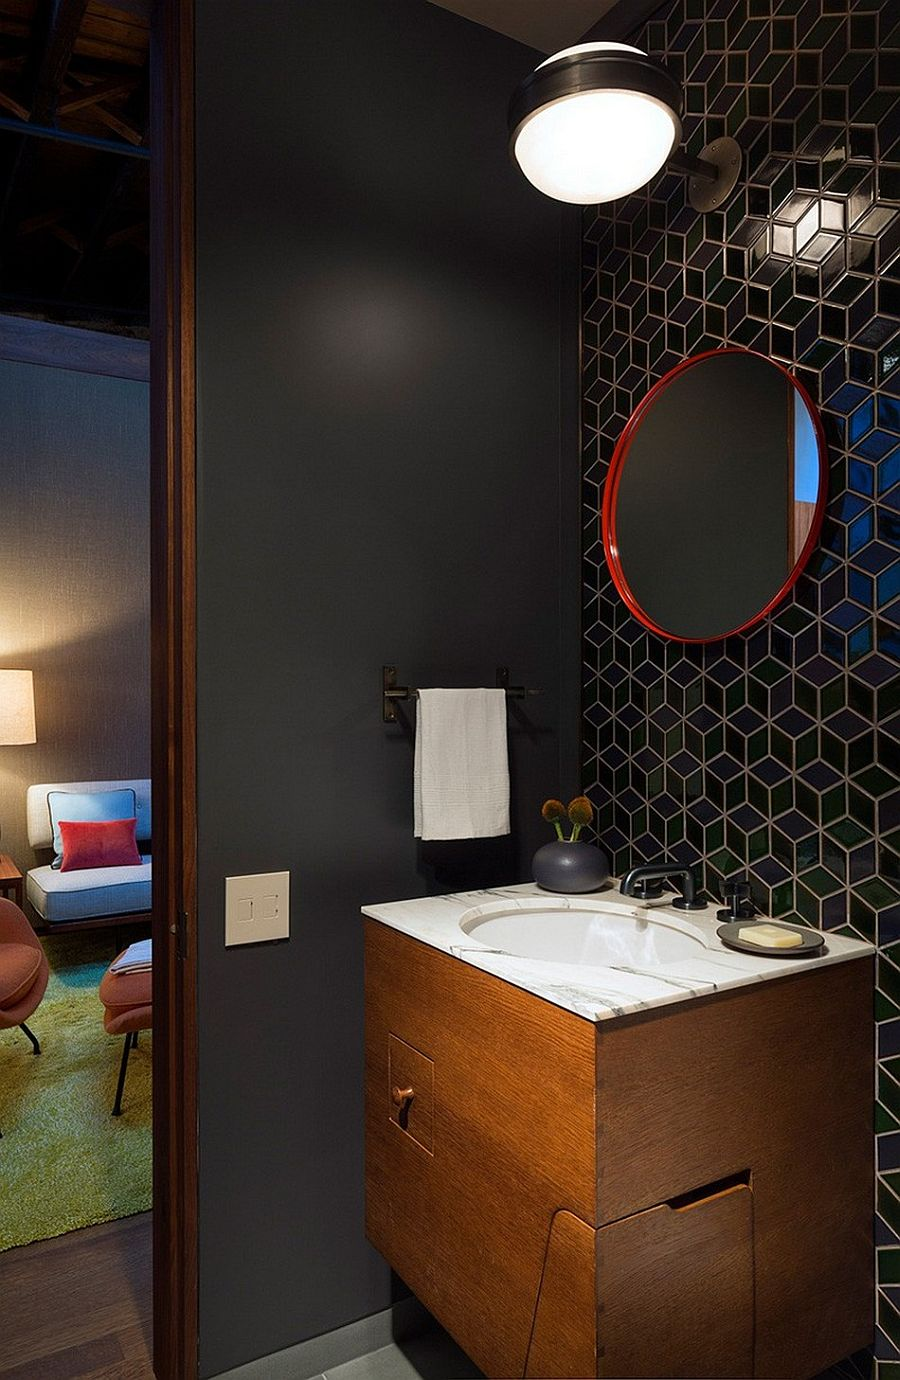 Wall tiles bring geometric pattern to the bathroom